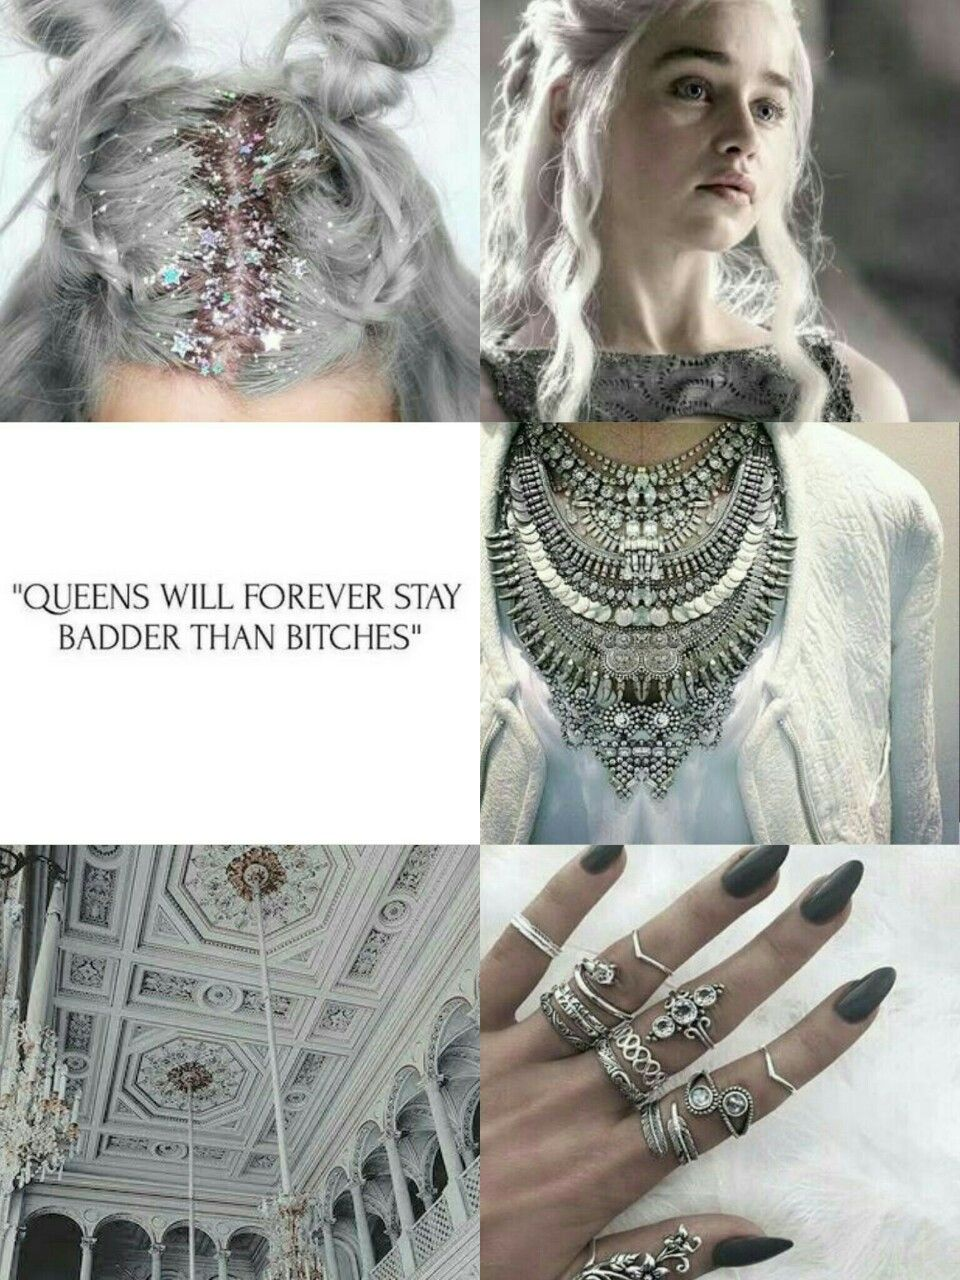 Kings Cage Evangeline Samos Space Buns Give Me Life King S Cage Red Queen Victoria Aveyard Red Queen Red Queen Book Series